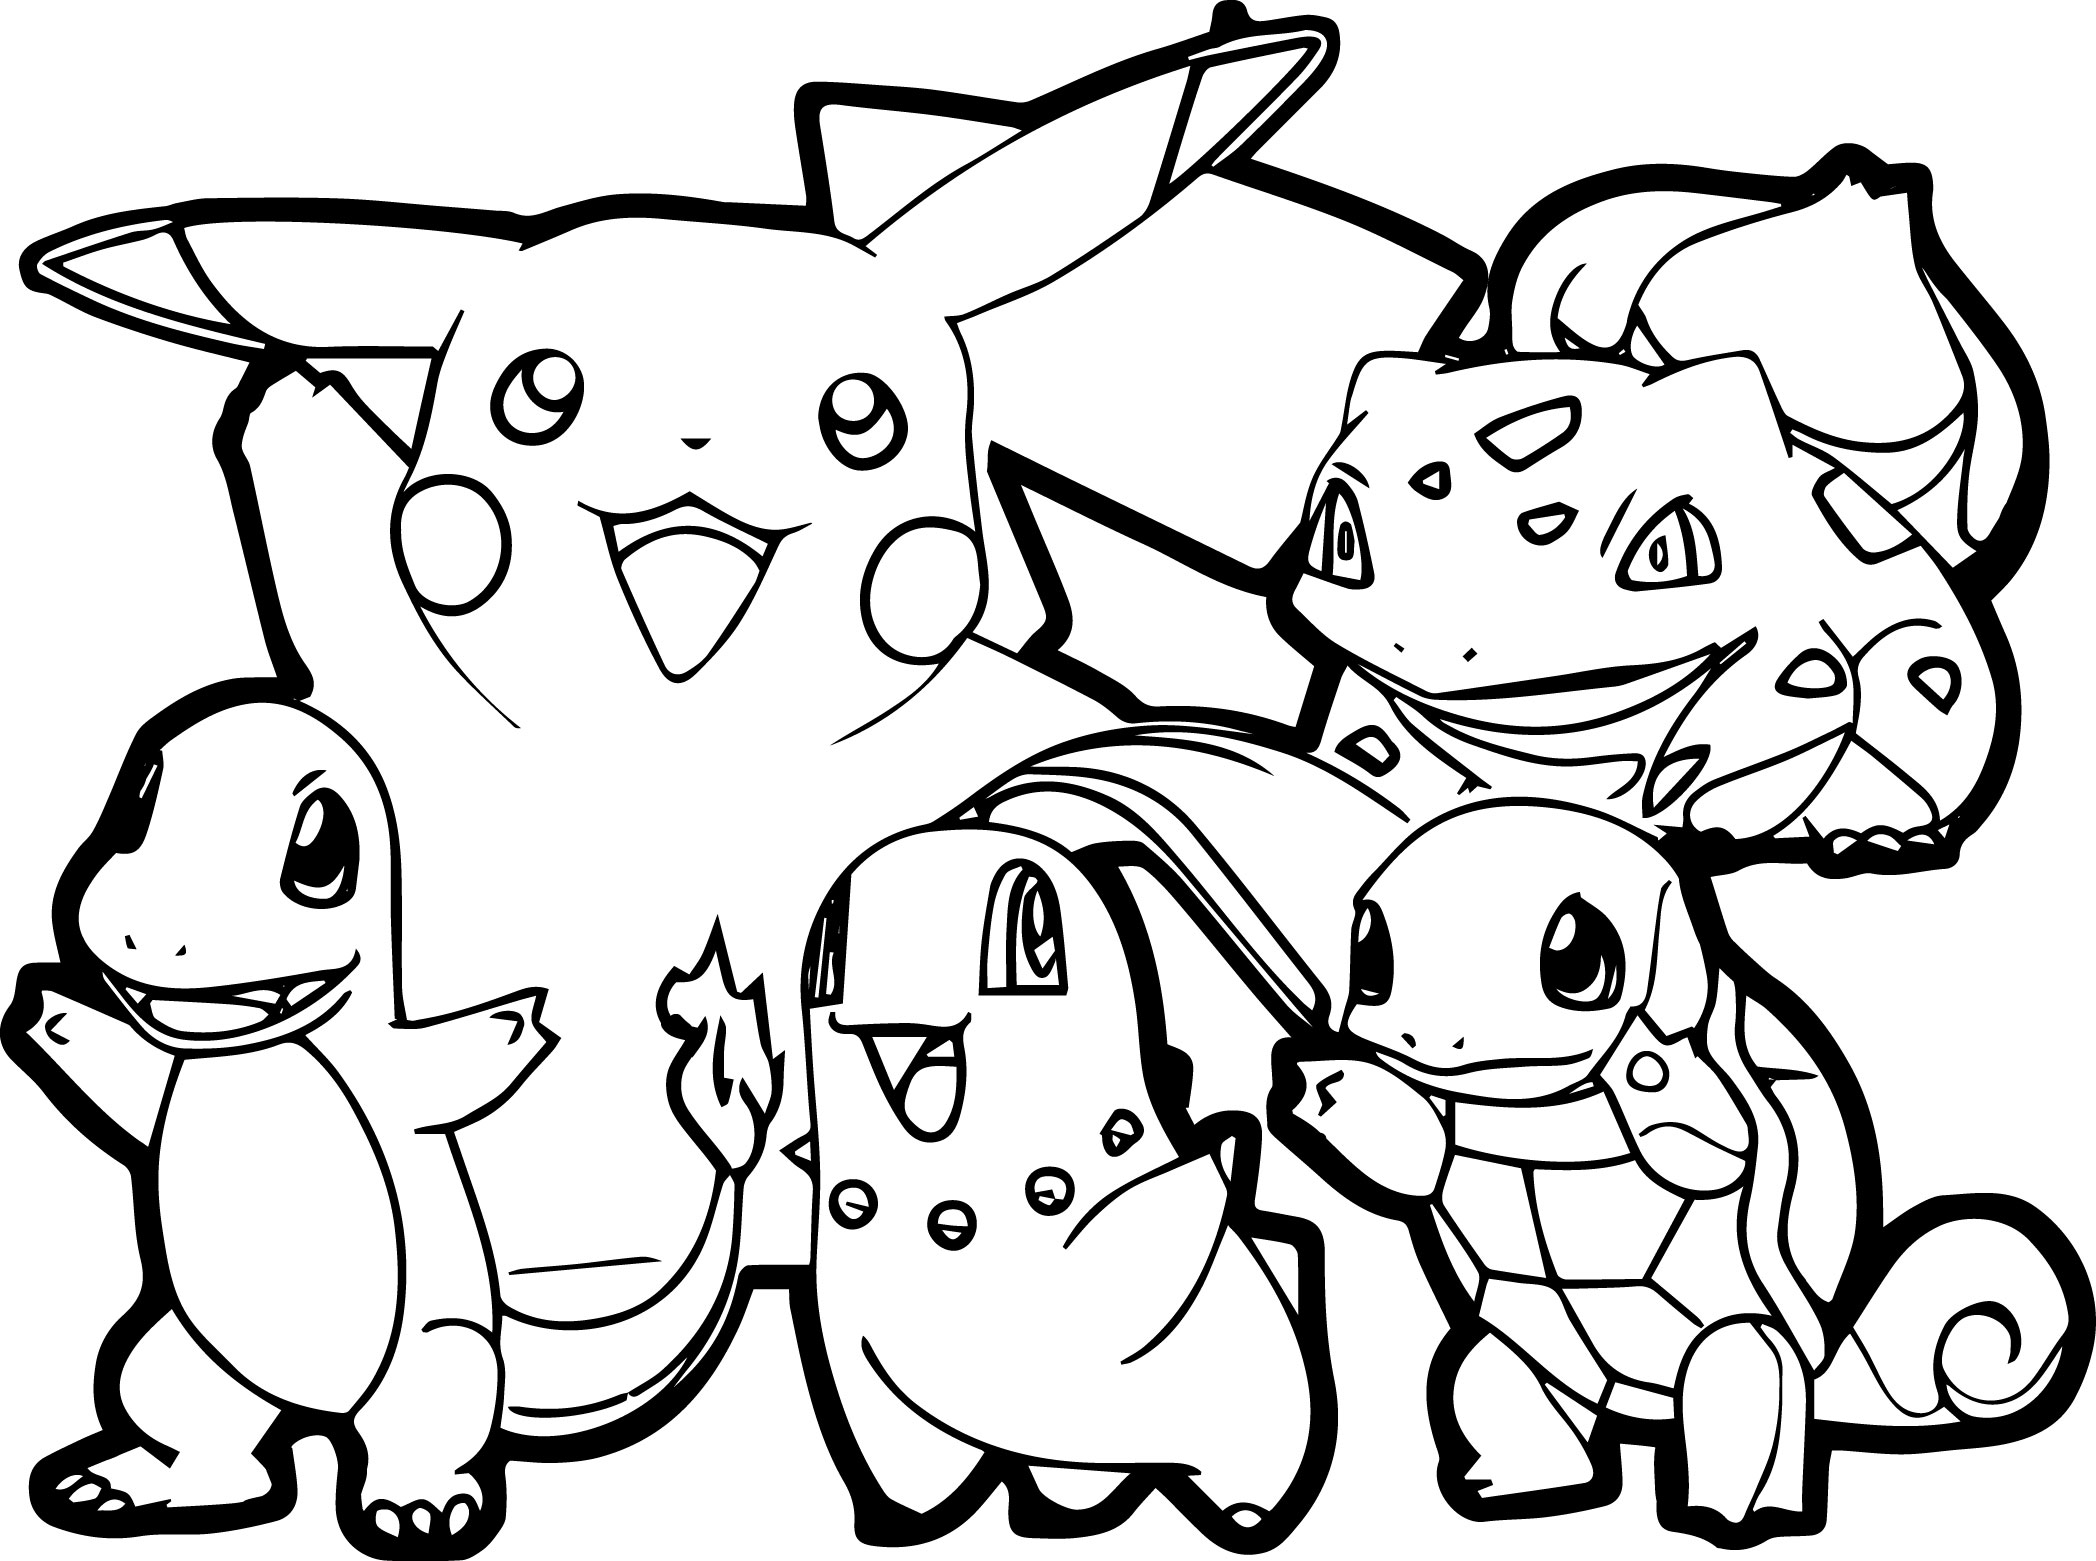 Pokemon traits epais coloriages pokemon coloriages - Dessins de pokemon ...